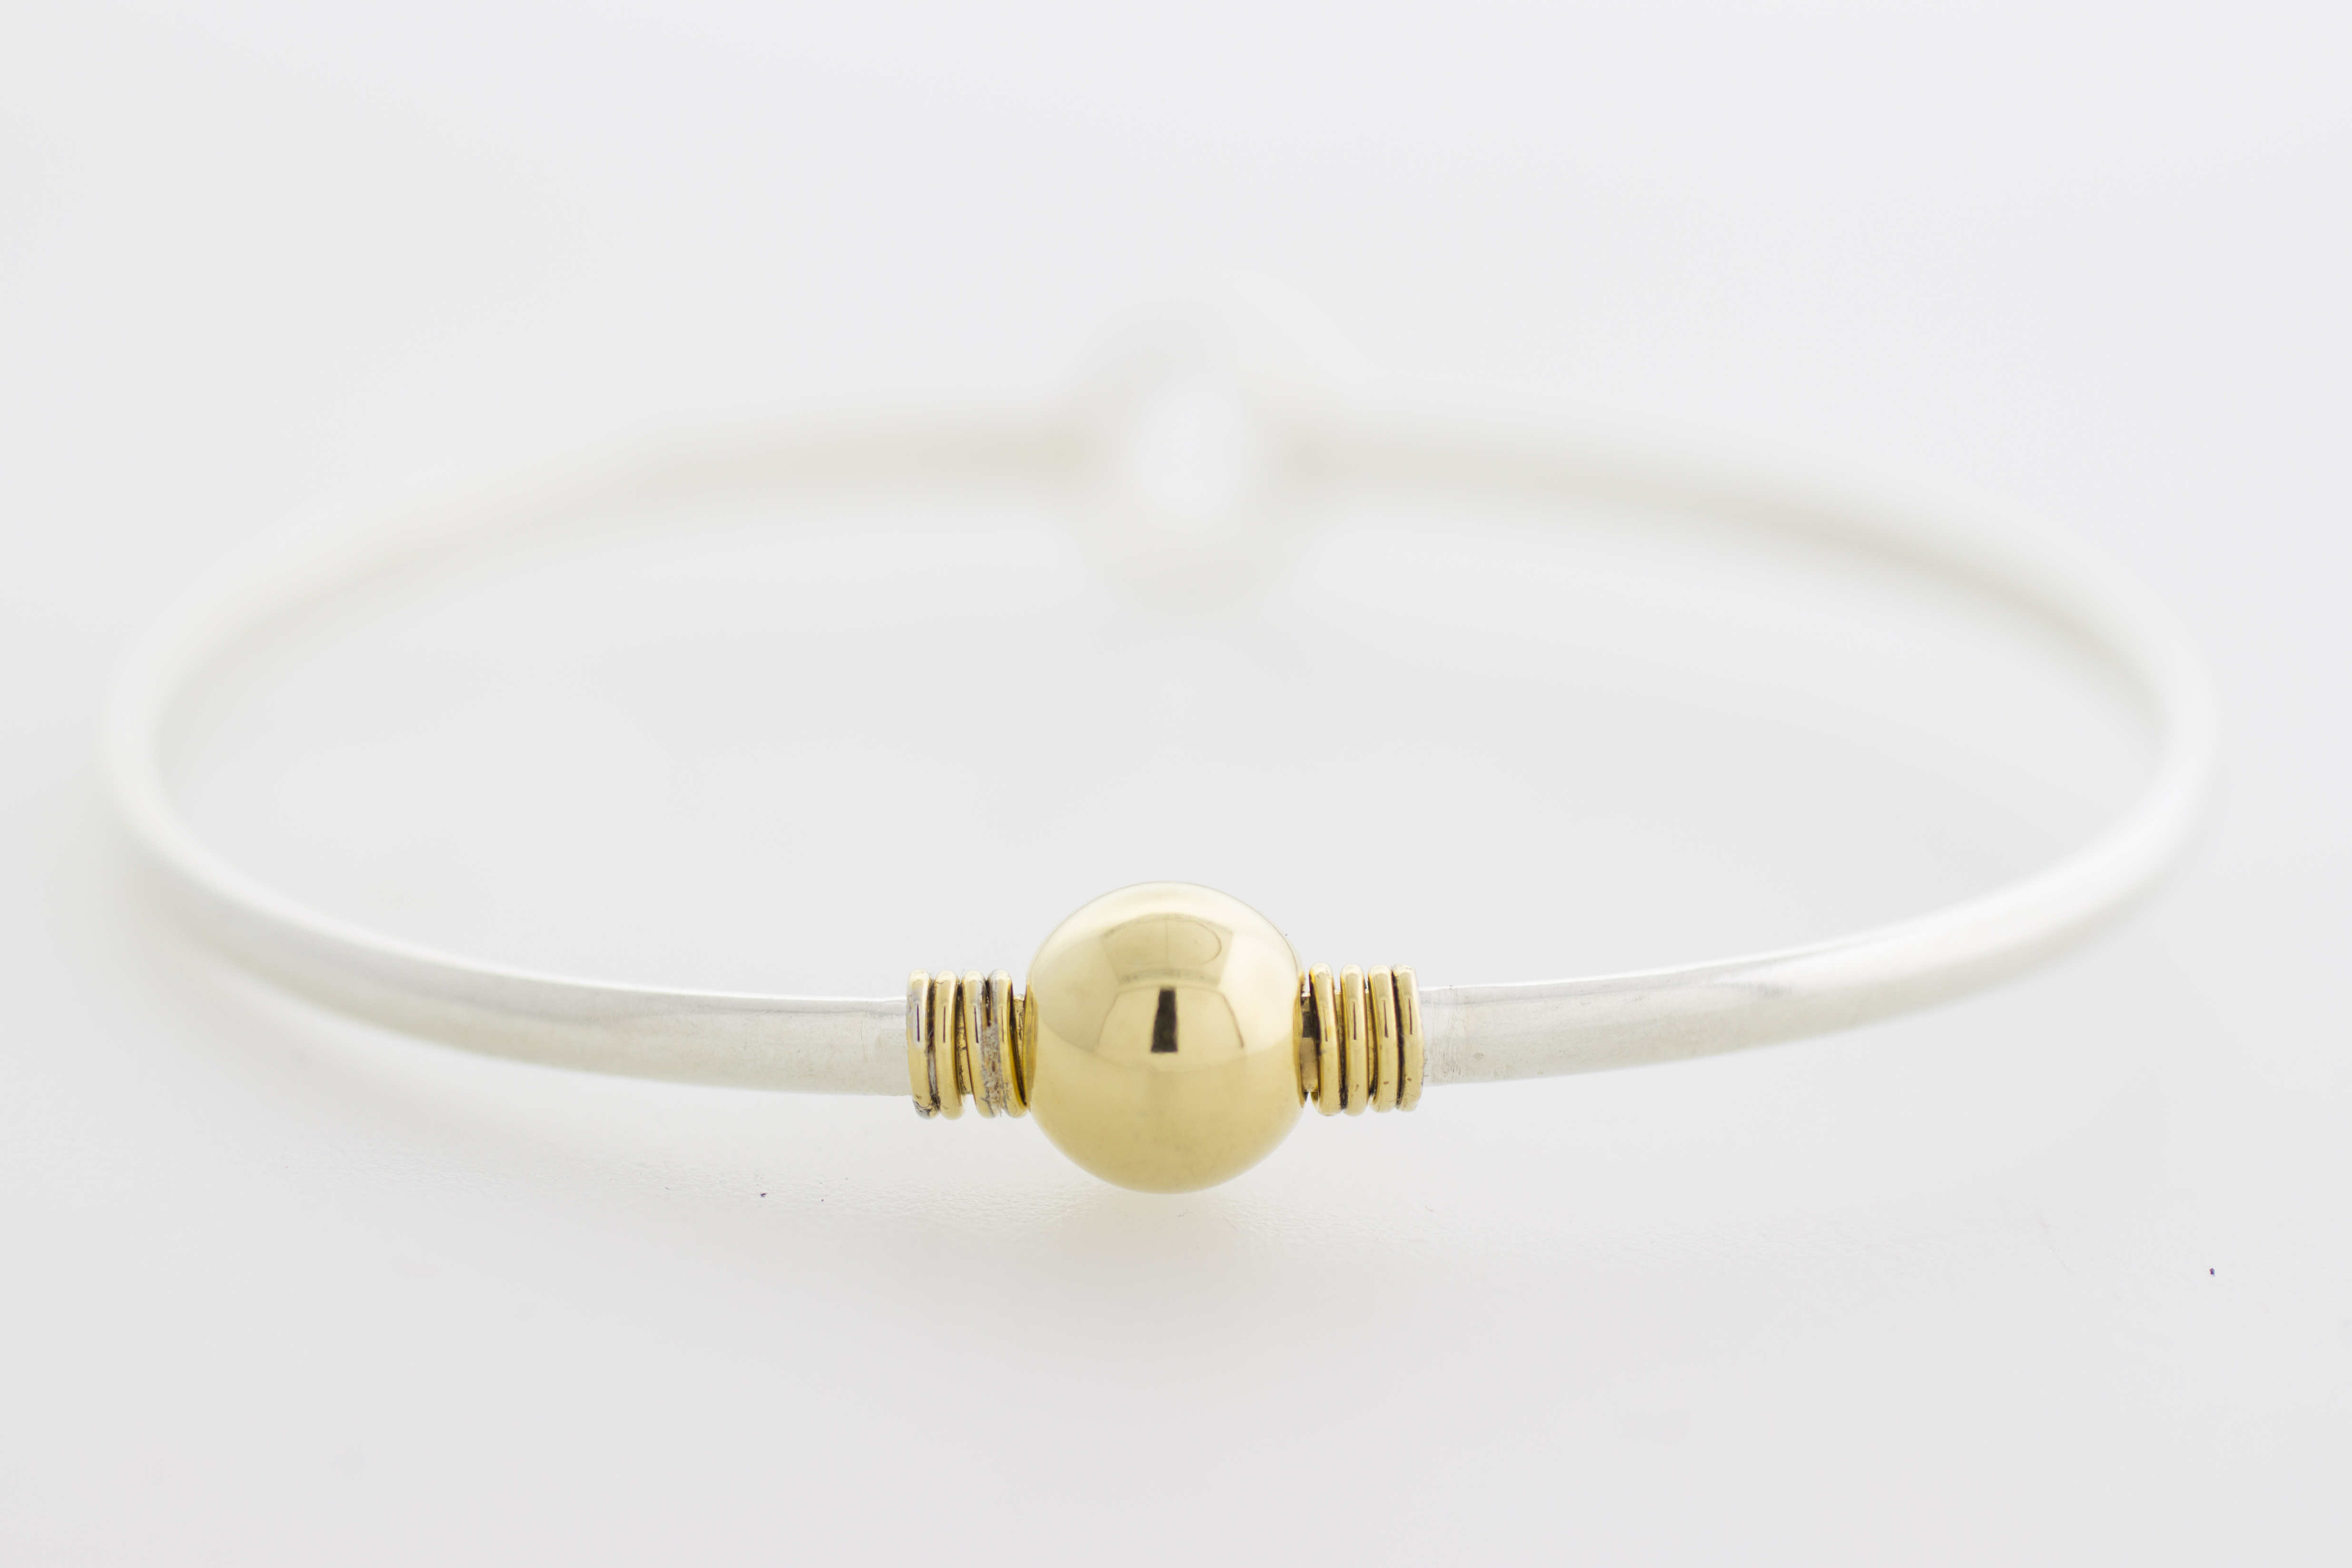 white heart piaget bracelet shaped gold bangles womens bangle women brands s